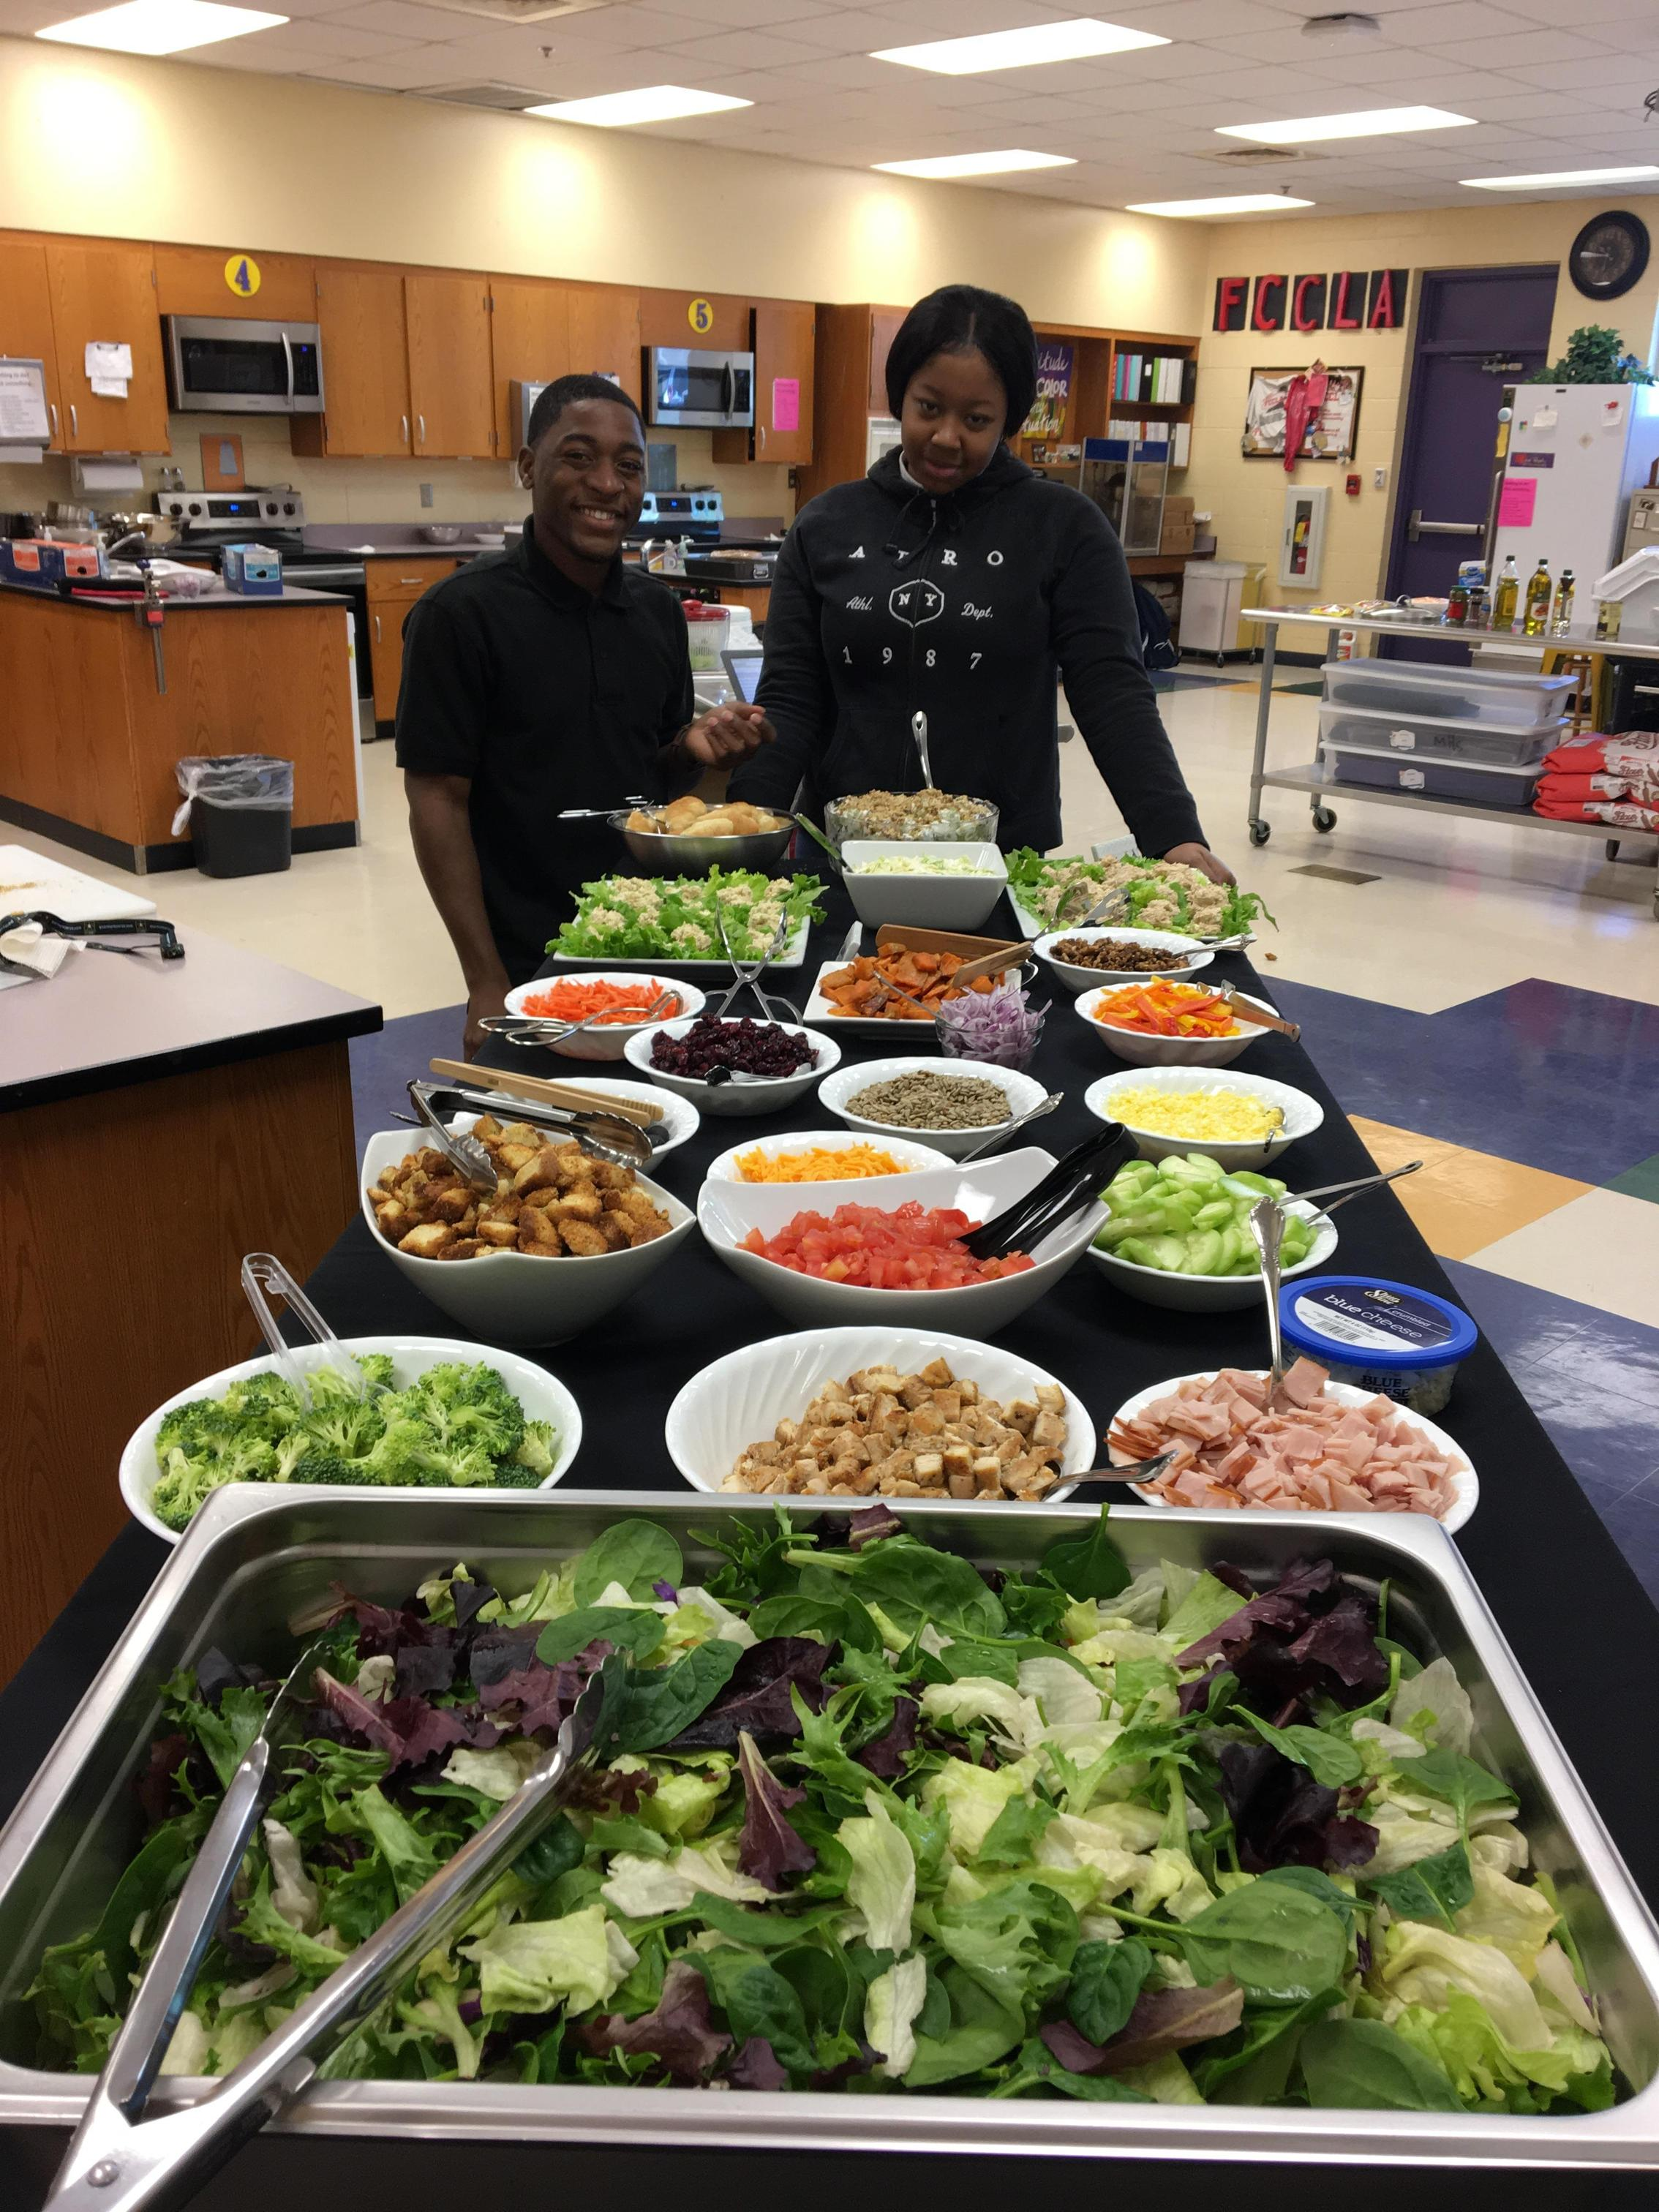 Beautiful arrangement of salad toppings and 3 students in black chef coats.